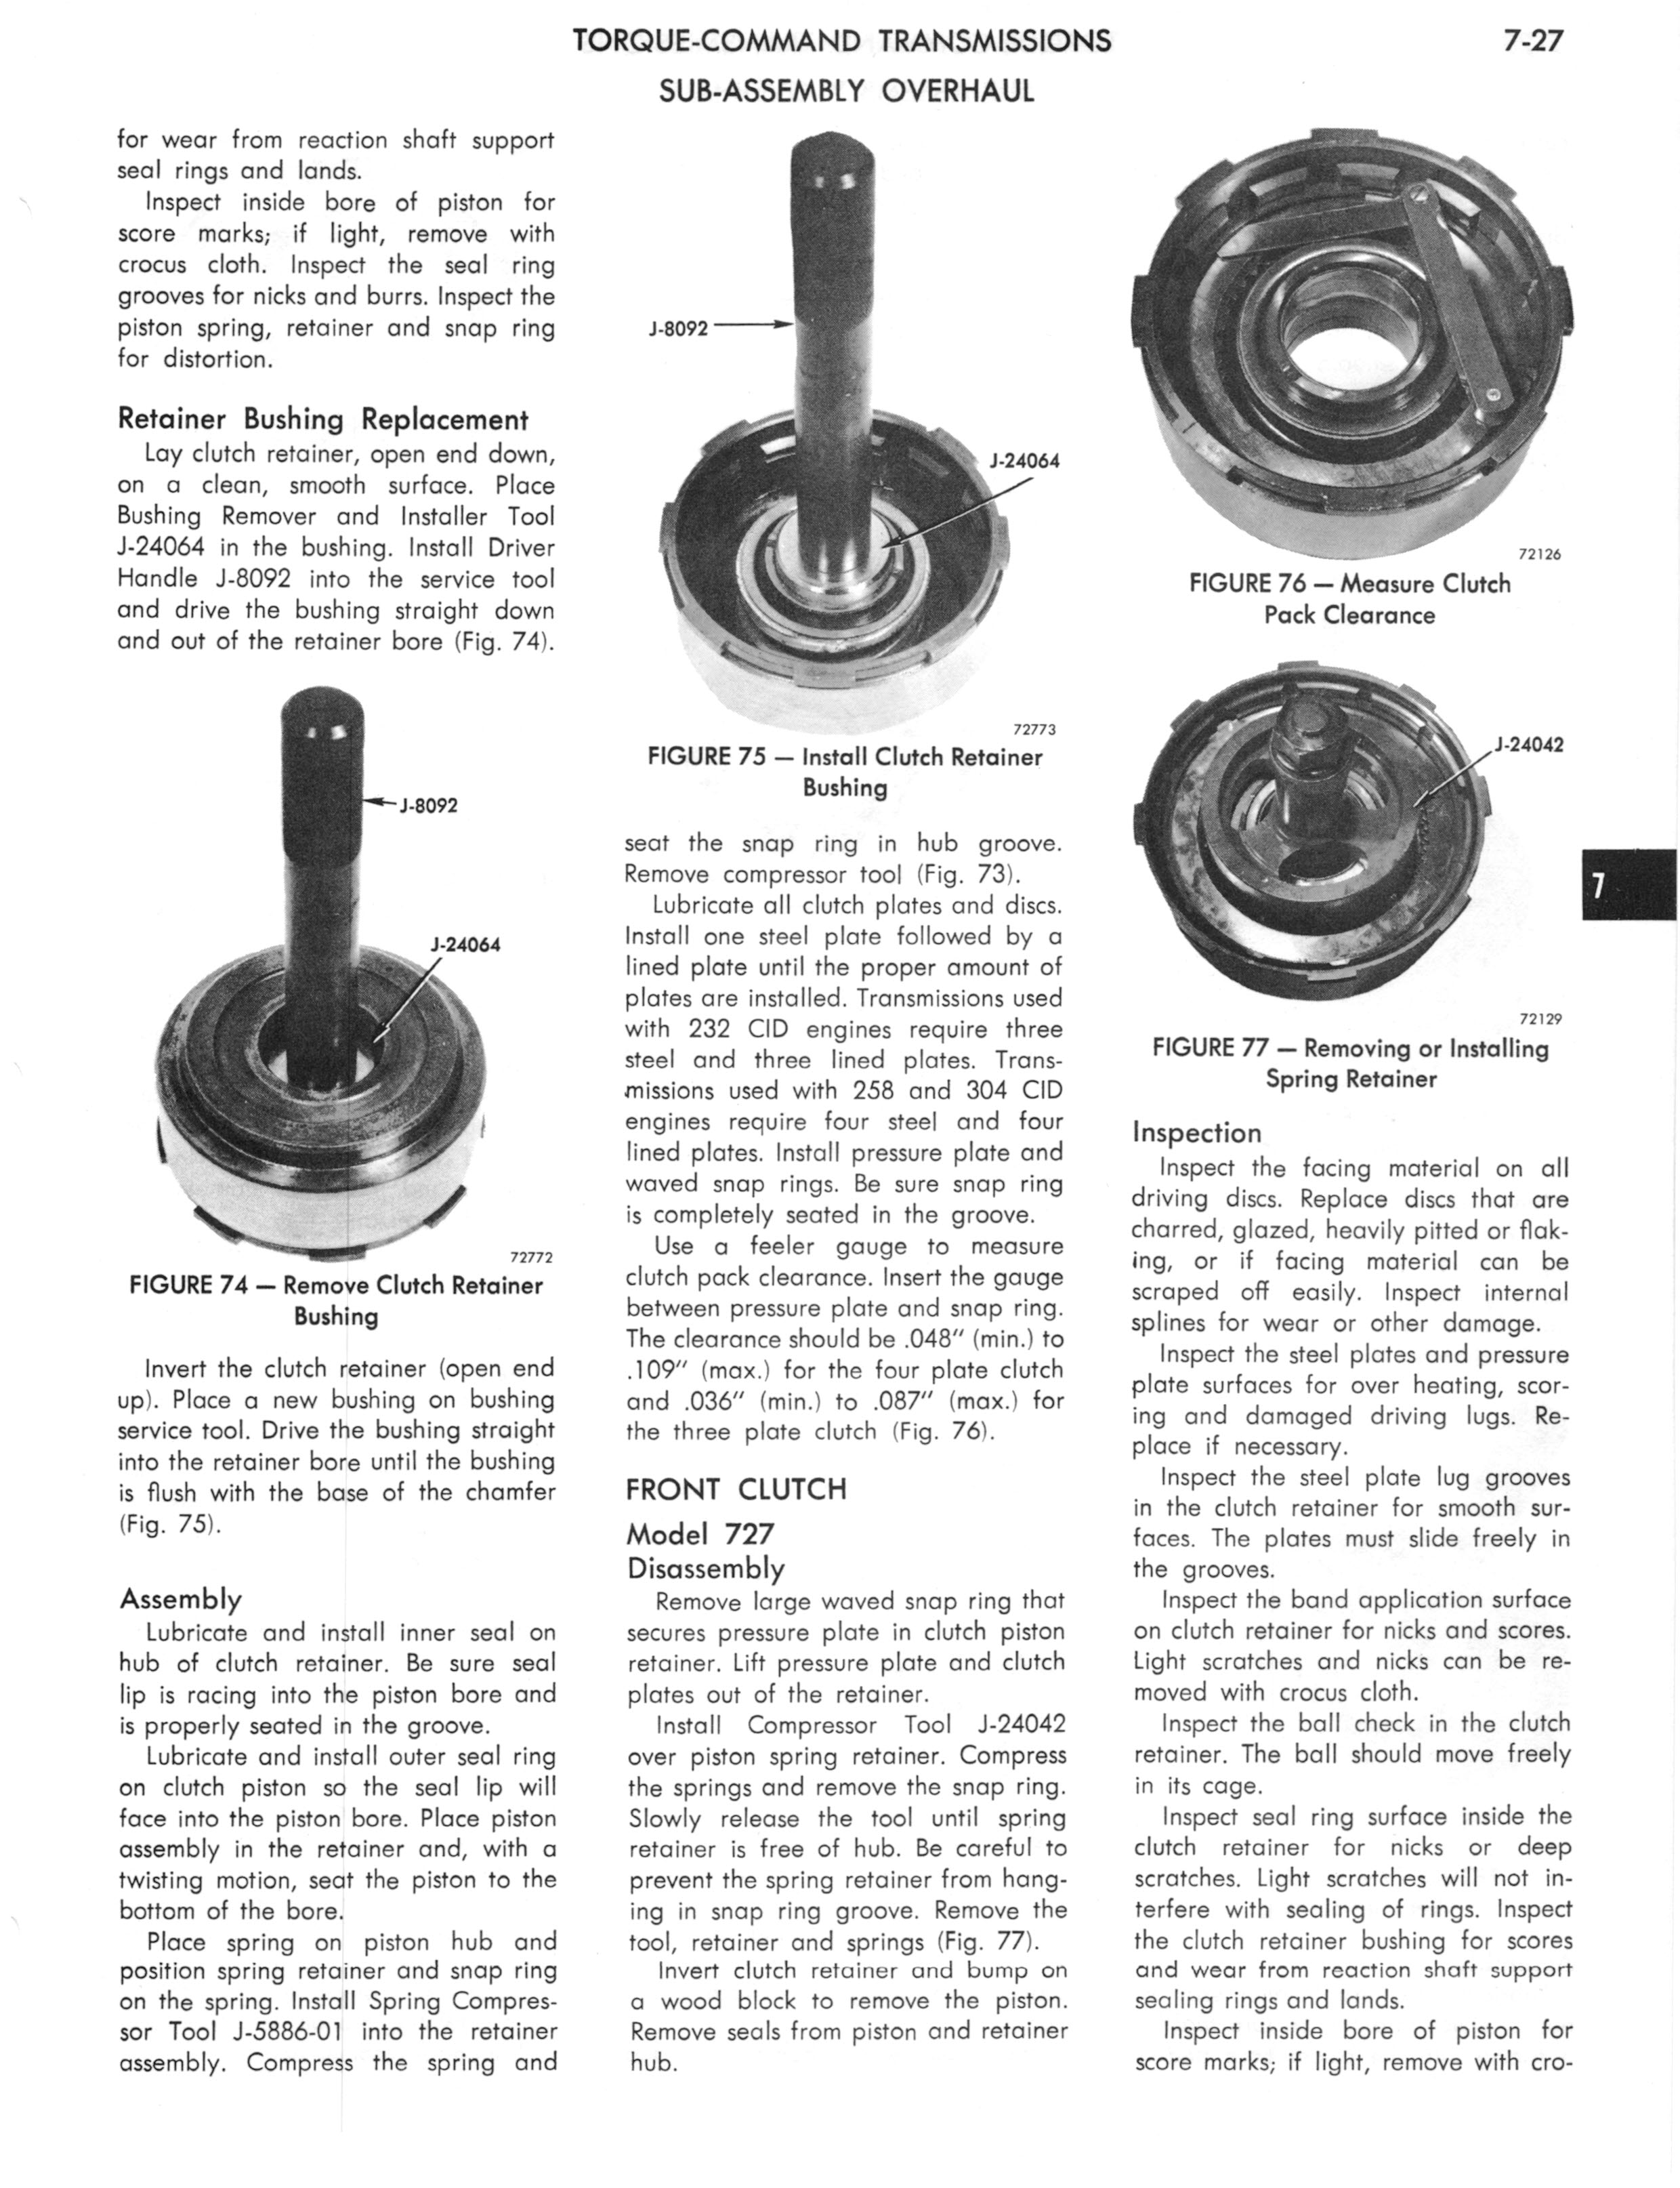 1973 AMC Technical Service Manual page 239 of 487